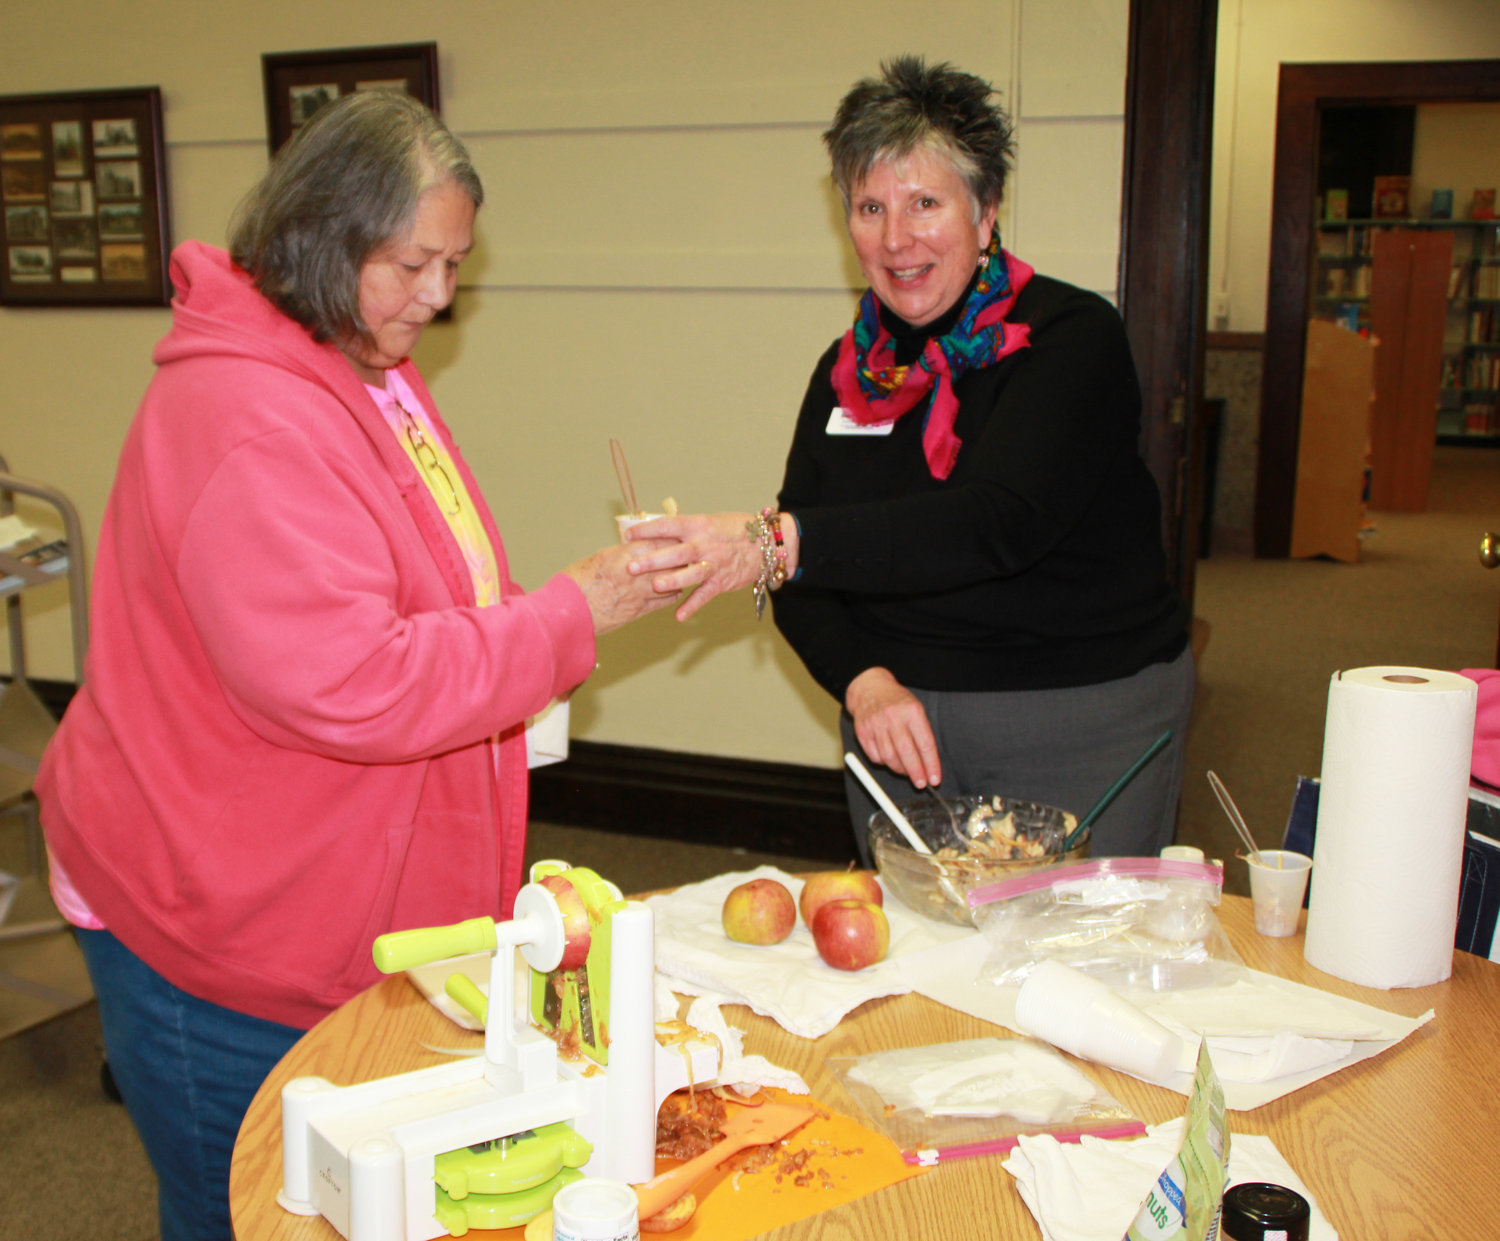 Mary Liz Wright, right, serves a sample of apple salad she made during a demonstration of new kitchen gadgets Tuesday, Jan. 9, at the Paris Public Library.